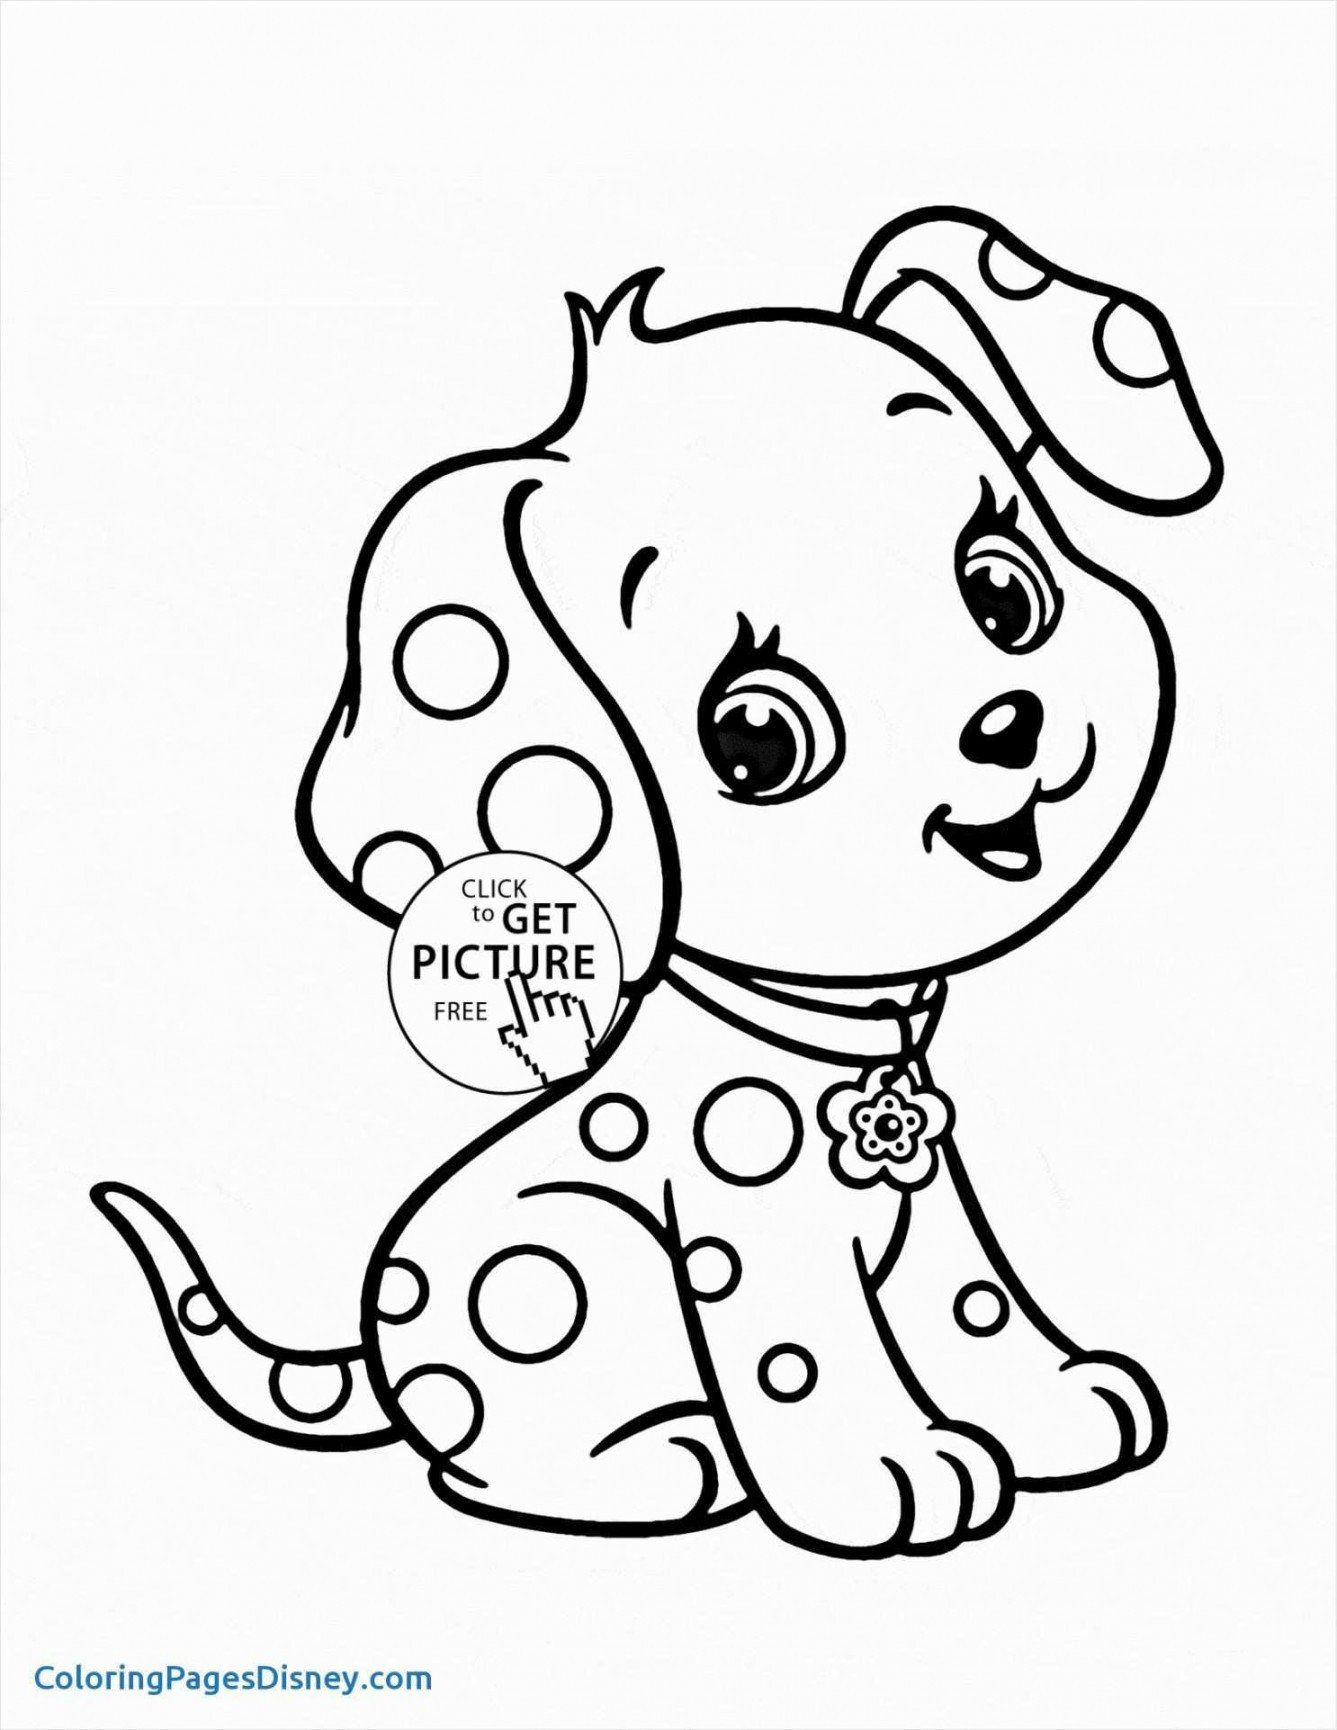 Printable Animal Coloring Pages Unique Coloring Ideas Funoring Pages For Toddlerslections A Unicorn Coloring Pages Puppy Coloring Pages Princess Coloring Pages